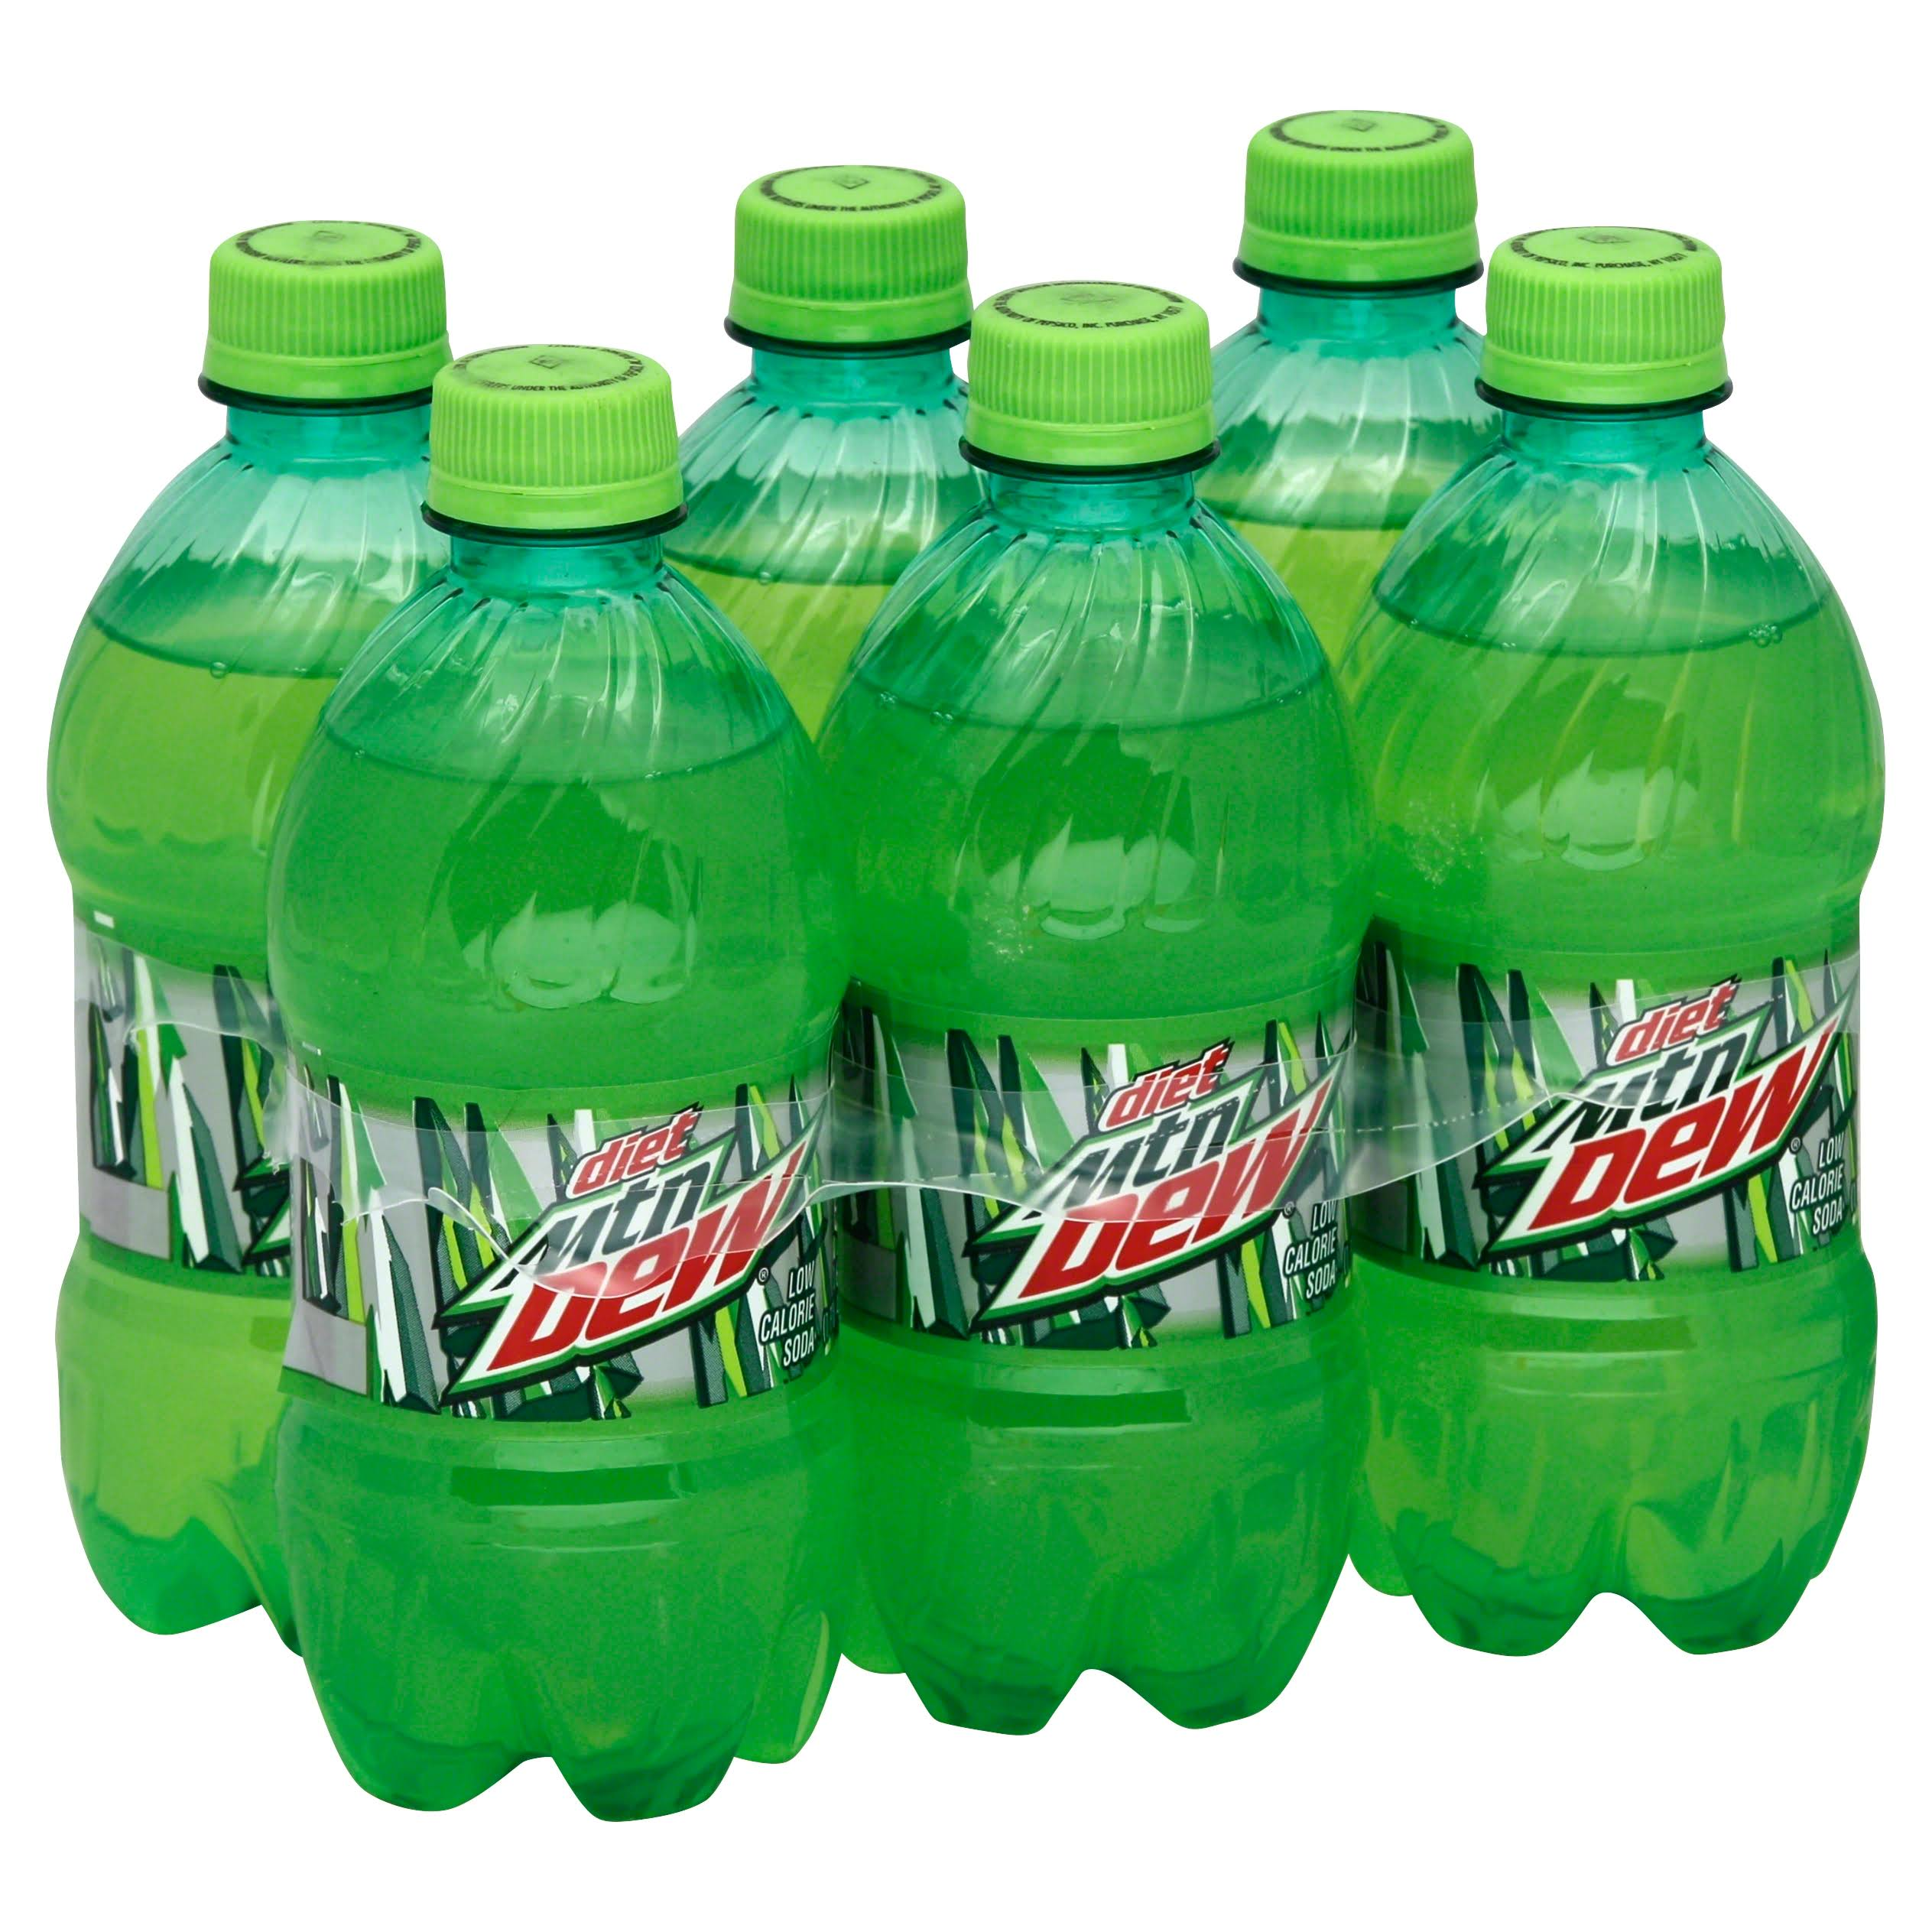 Mountain Dew Soda - Diet, 16oz, 6pk